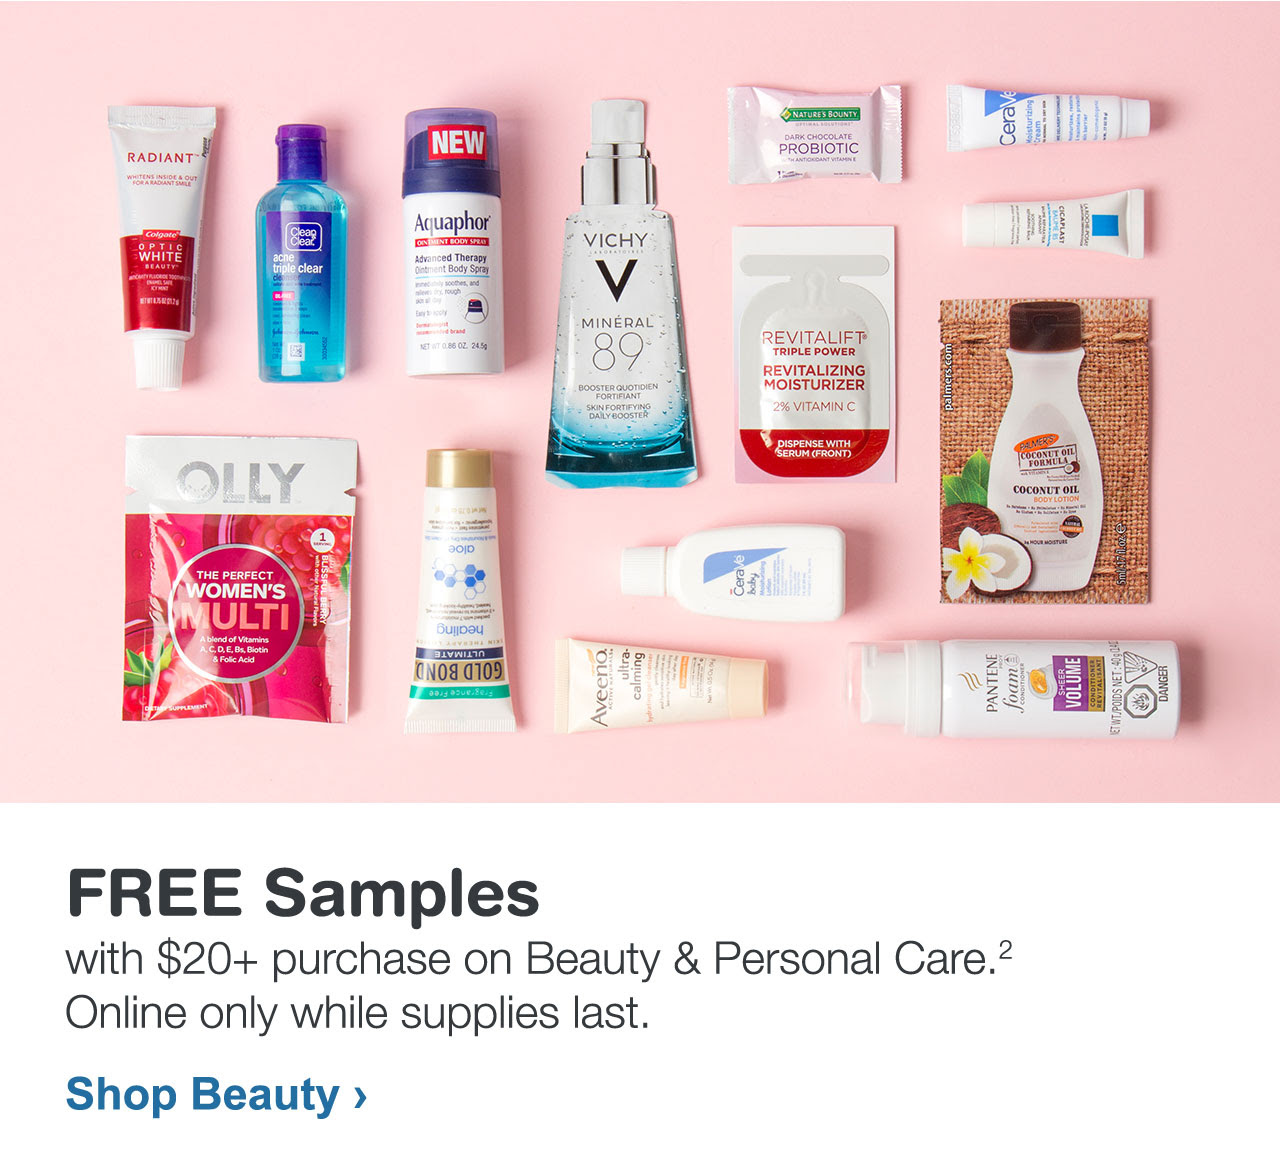 Beauty enthusiast exclusive. FREE Samples with $20+ purchase on Beauty & Personal Care. Online only while supplies last.